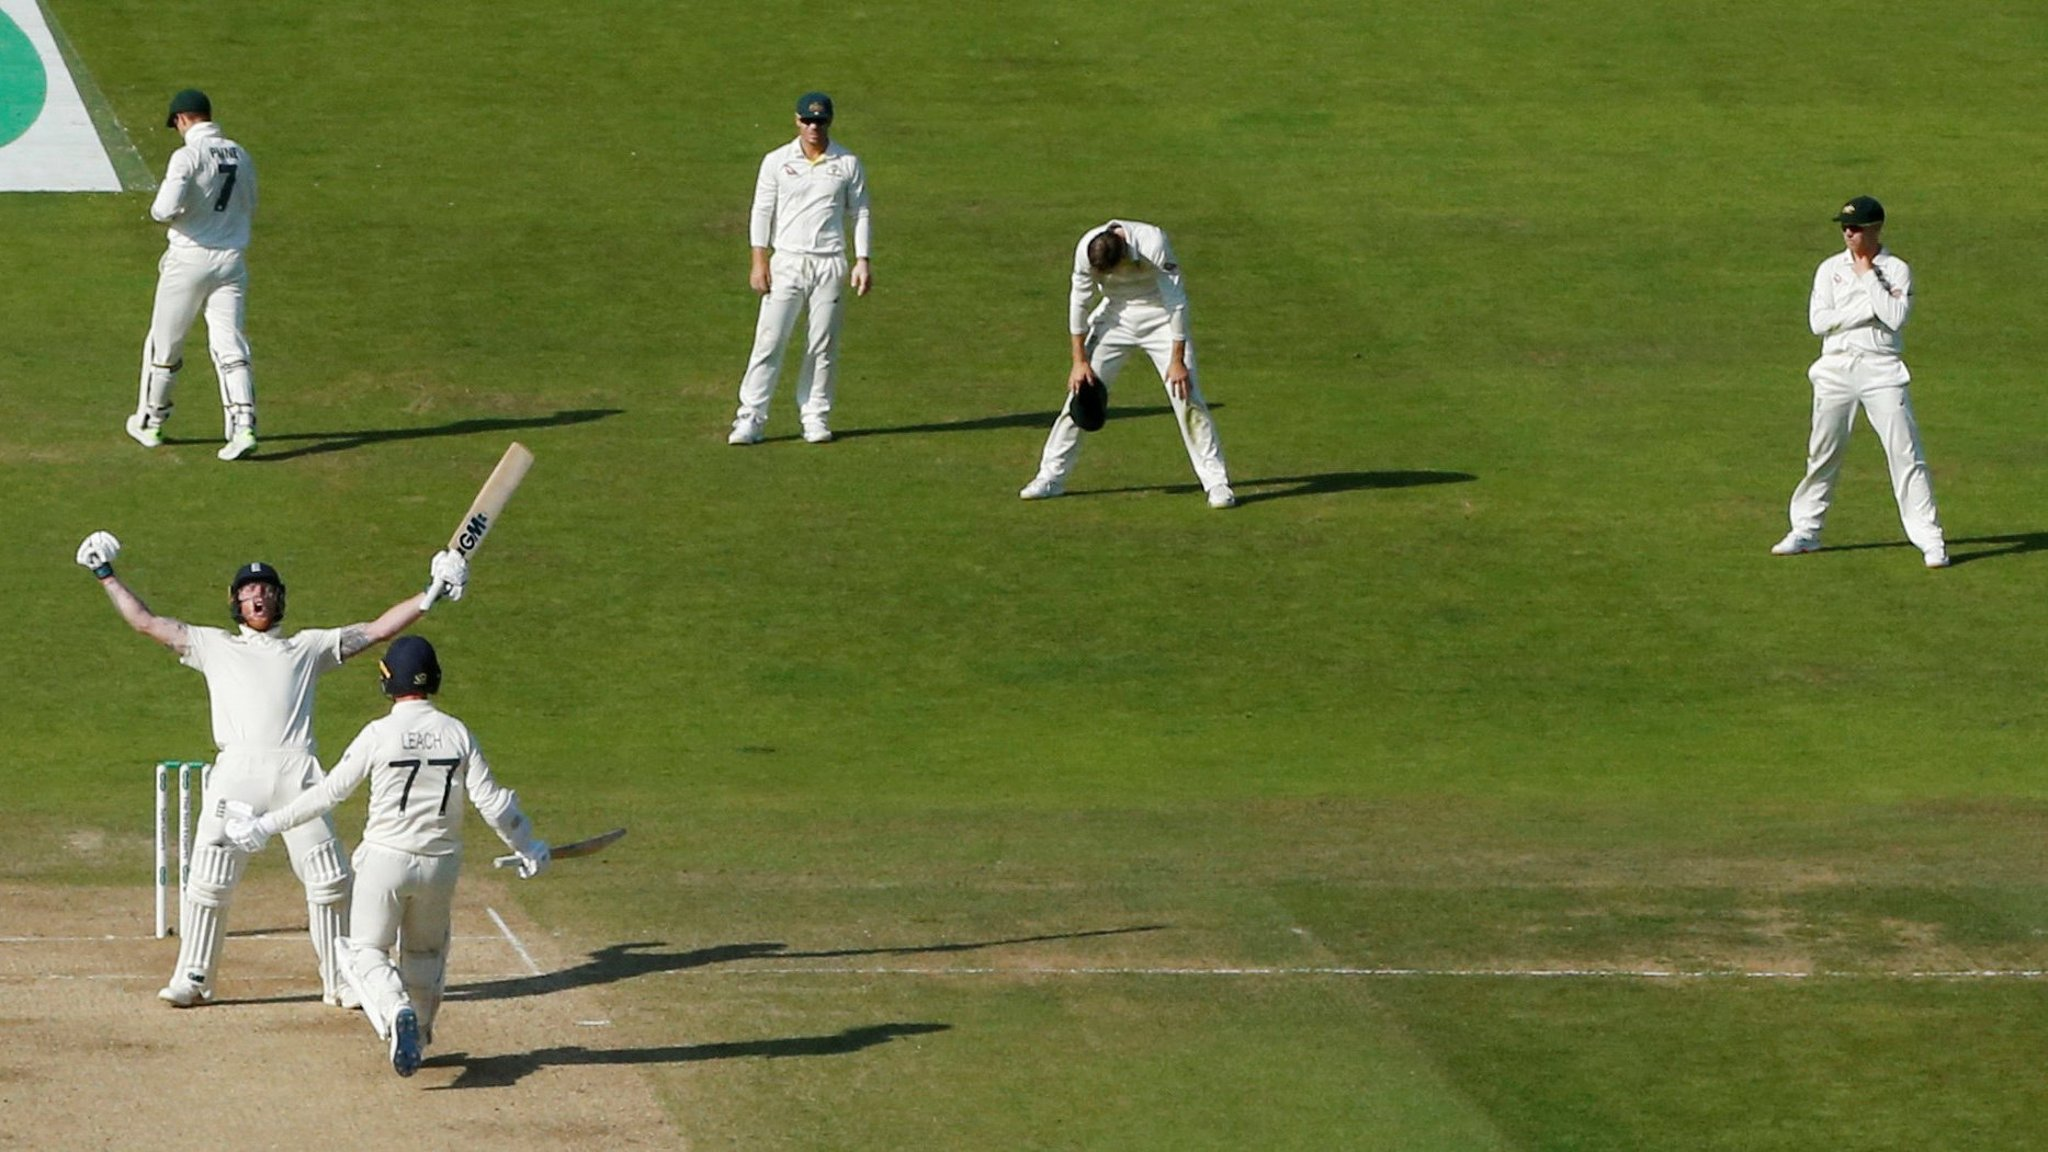 Ben Stokes Heroics Lead England Cricketers To Epic Ashes